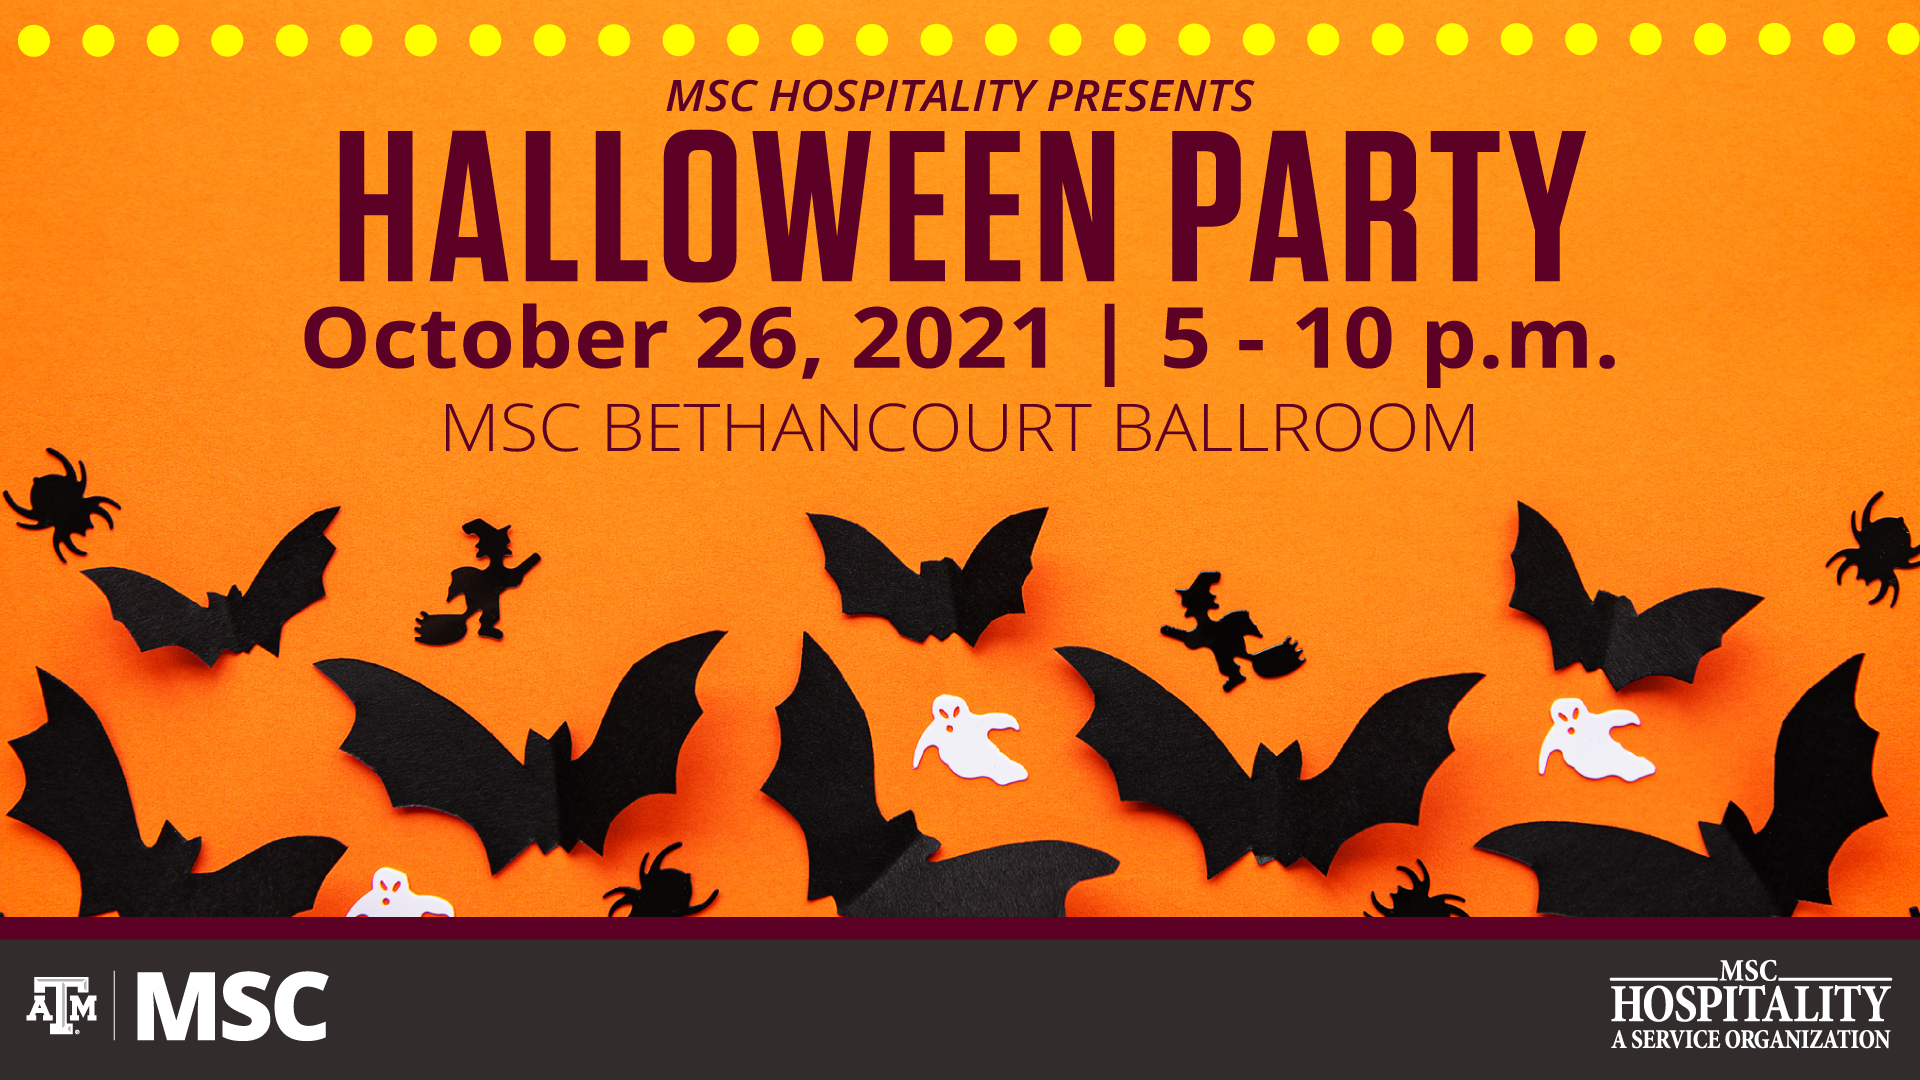 MSC Hospitality Presents: Halloween Party. October 26, 2021 from 5 to 10 p.m. at MSC Bethancourt Ballroom